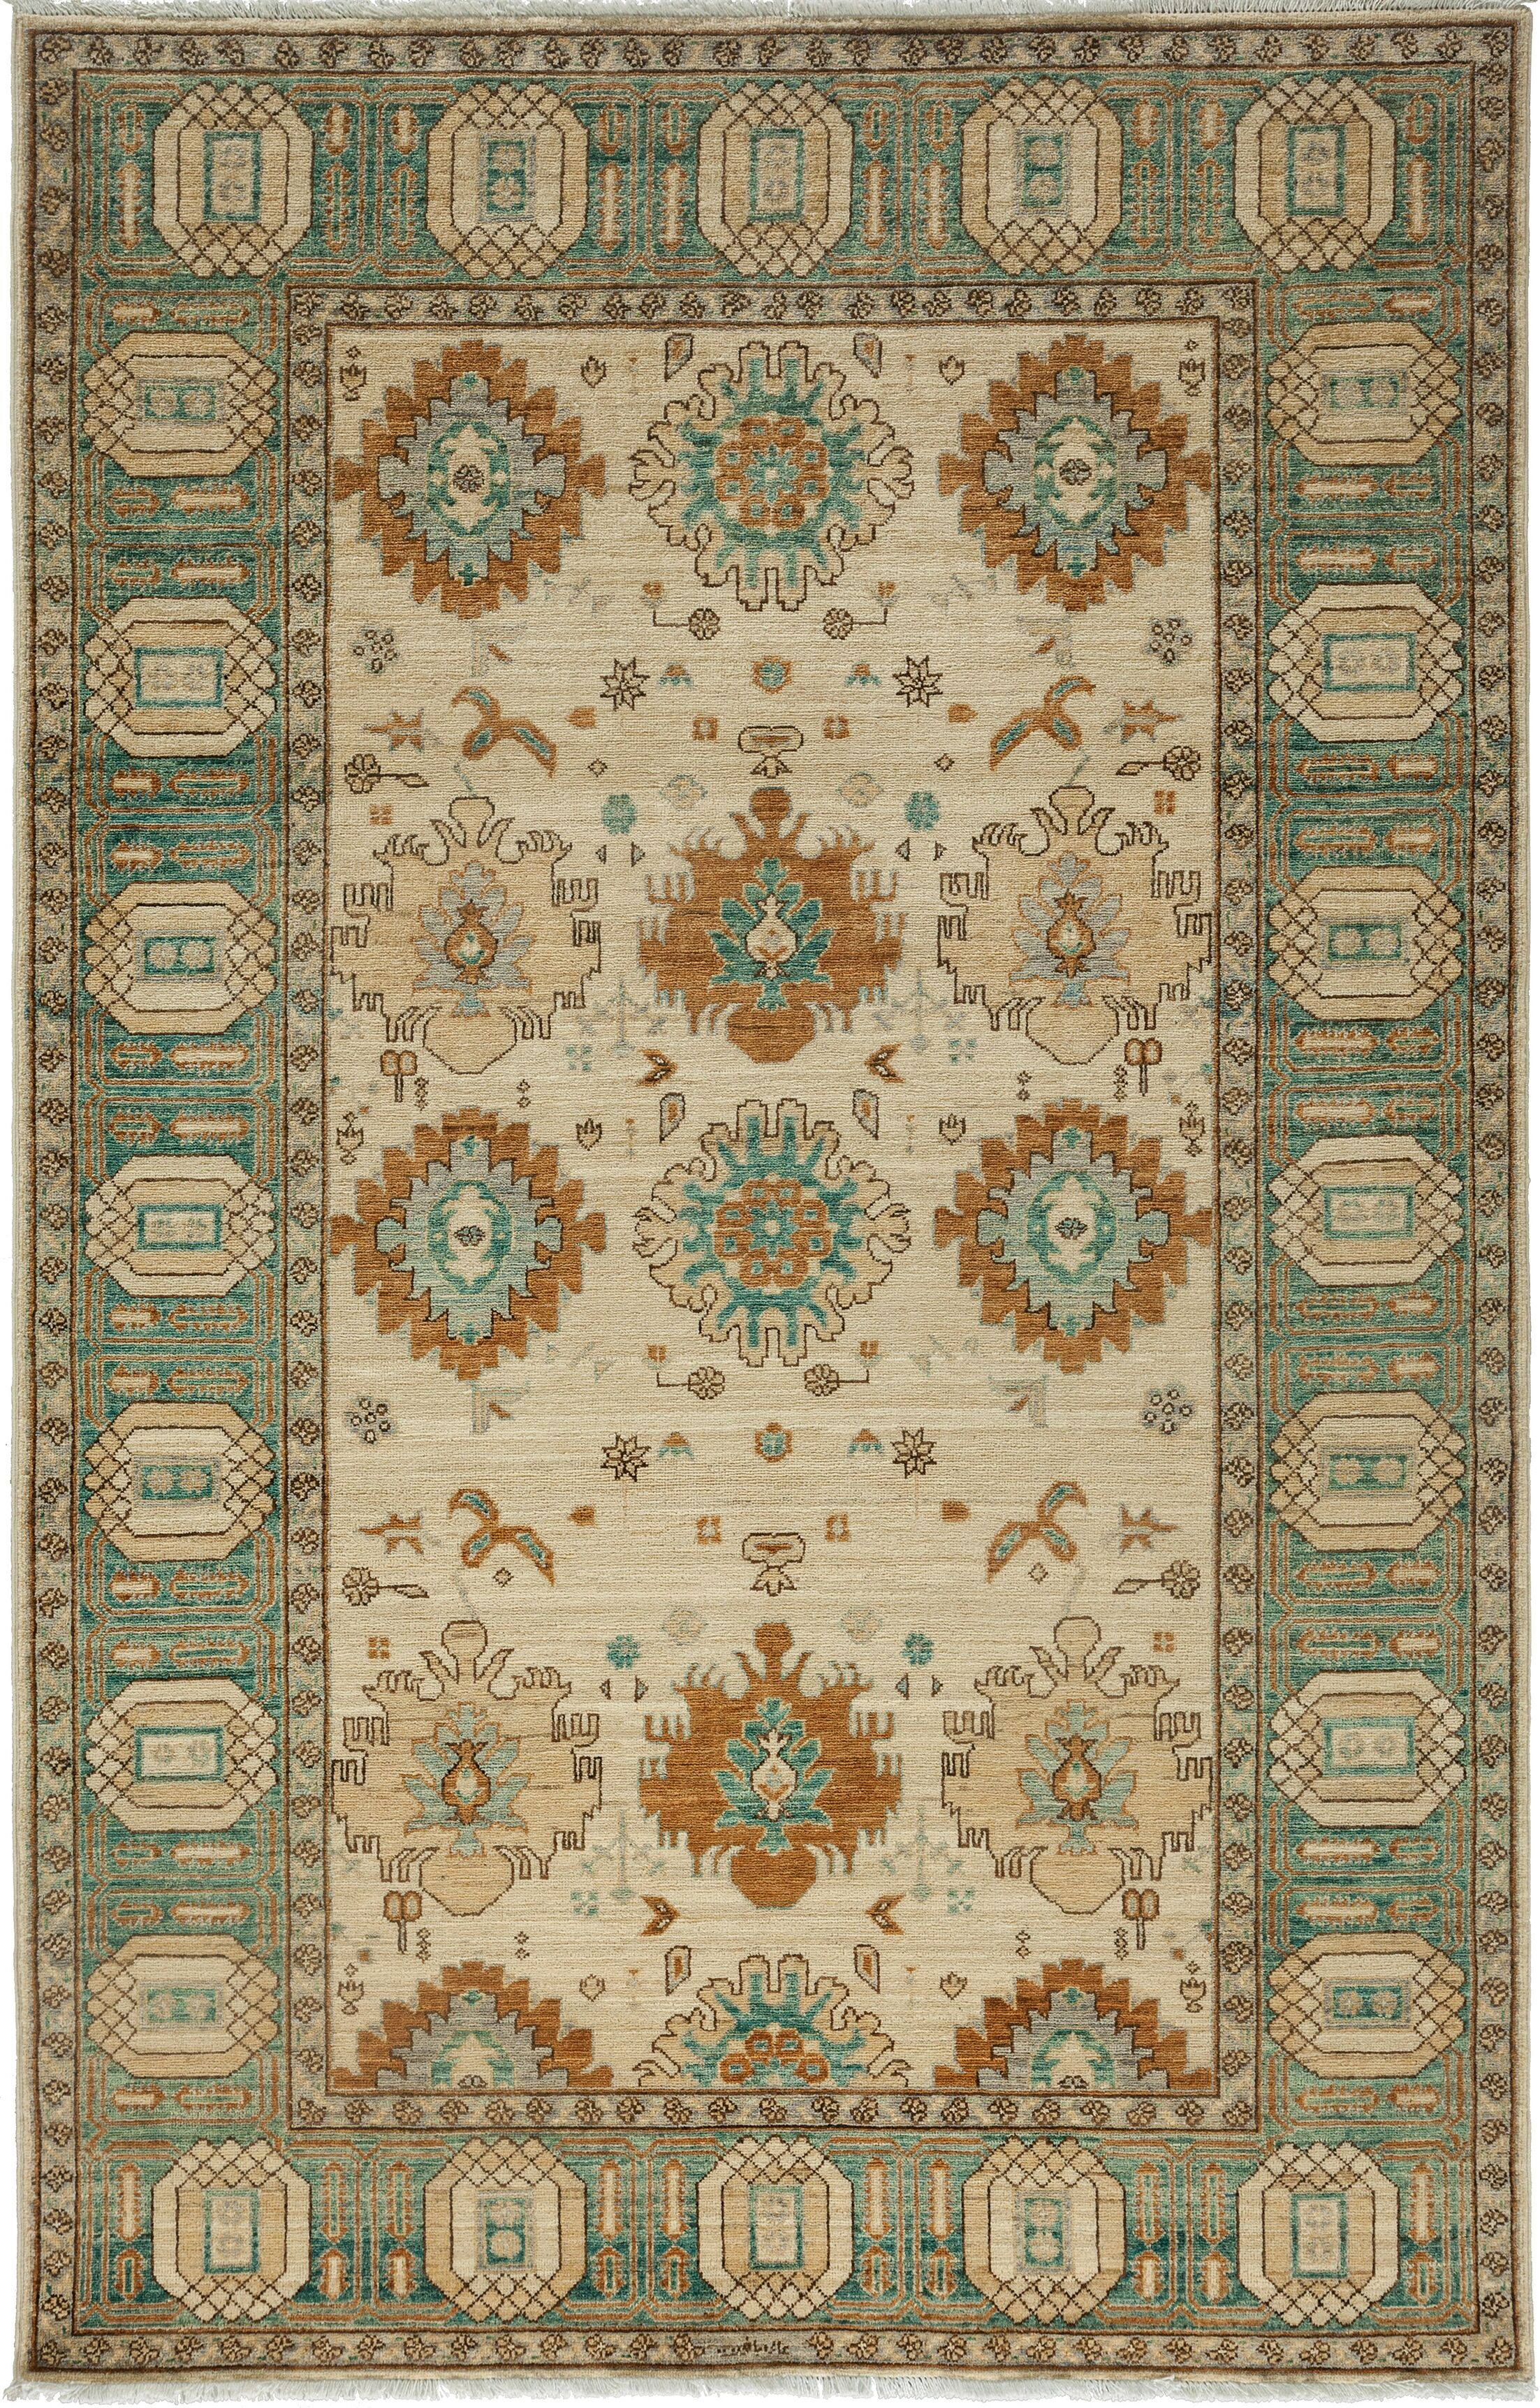 One-of-a-Kind Ziegler Hand-Knotted Ivory Area Rug Rug Size: Rectangle 5'2